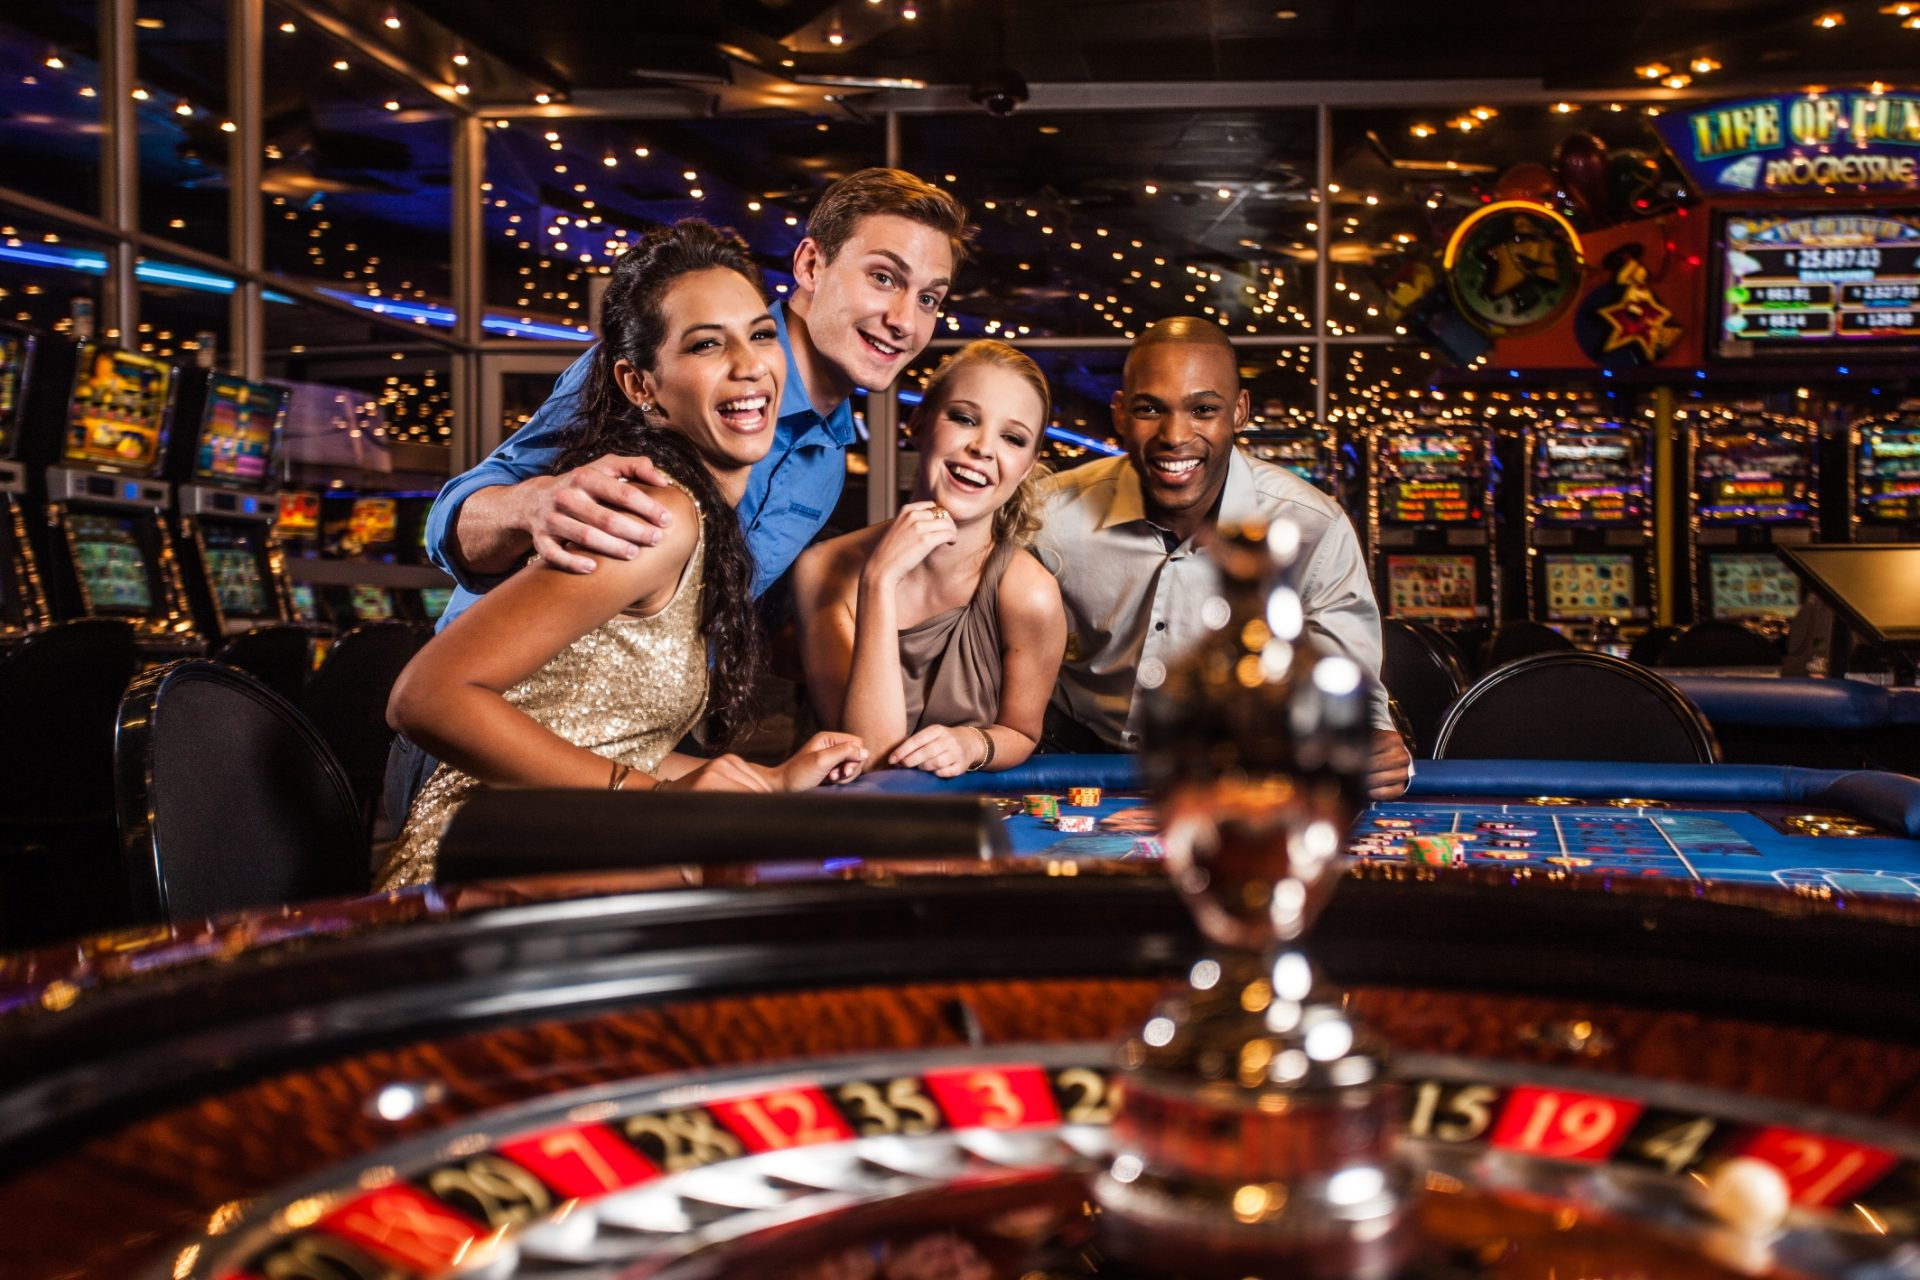 The experience and atmosphere of live casino: